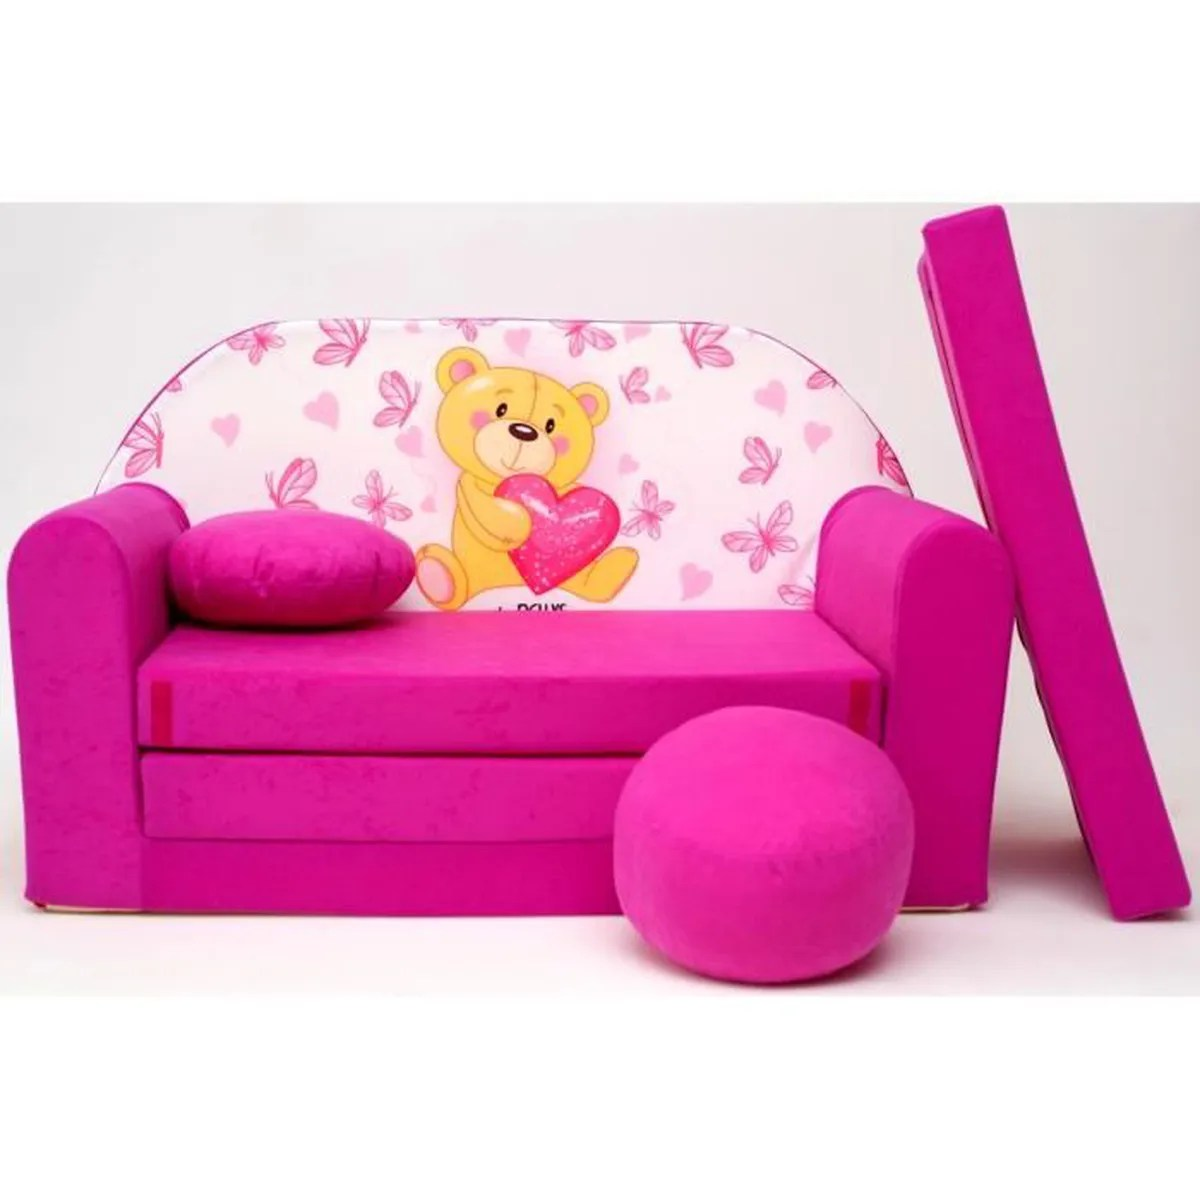 Honey Bear Meubles Avis Canape Sofa Enfant 2 Places Convertible Sweet Bear Rose